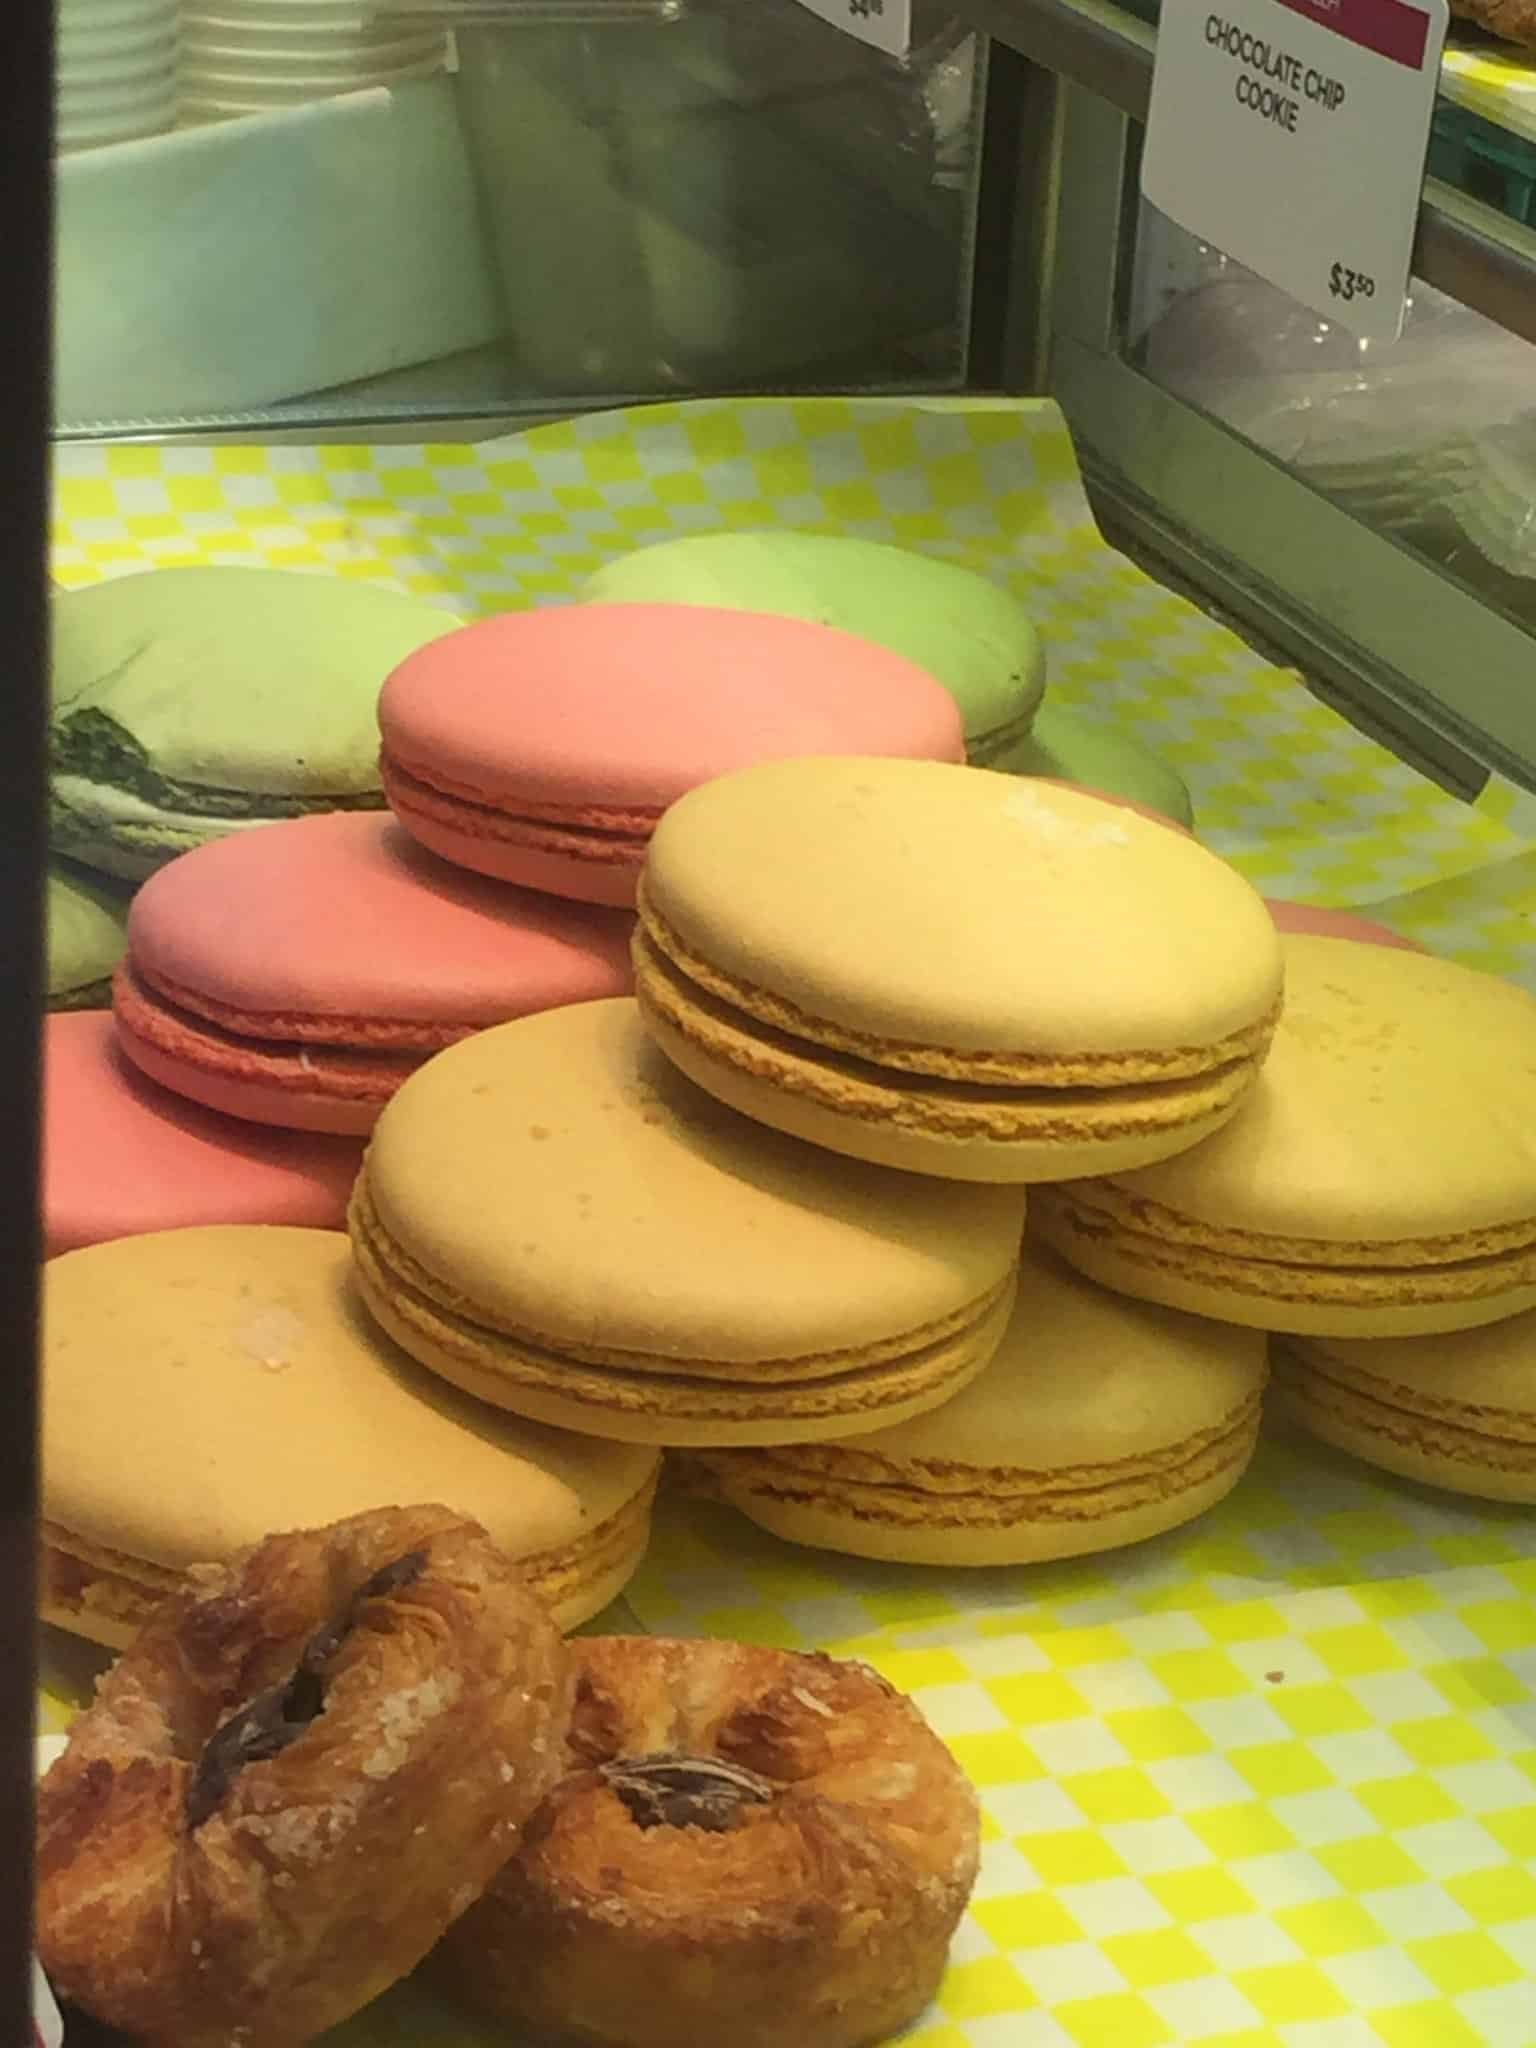 Pieces of macarons on display.